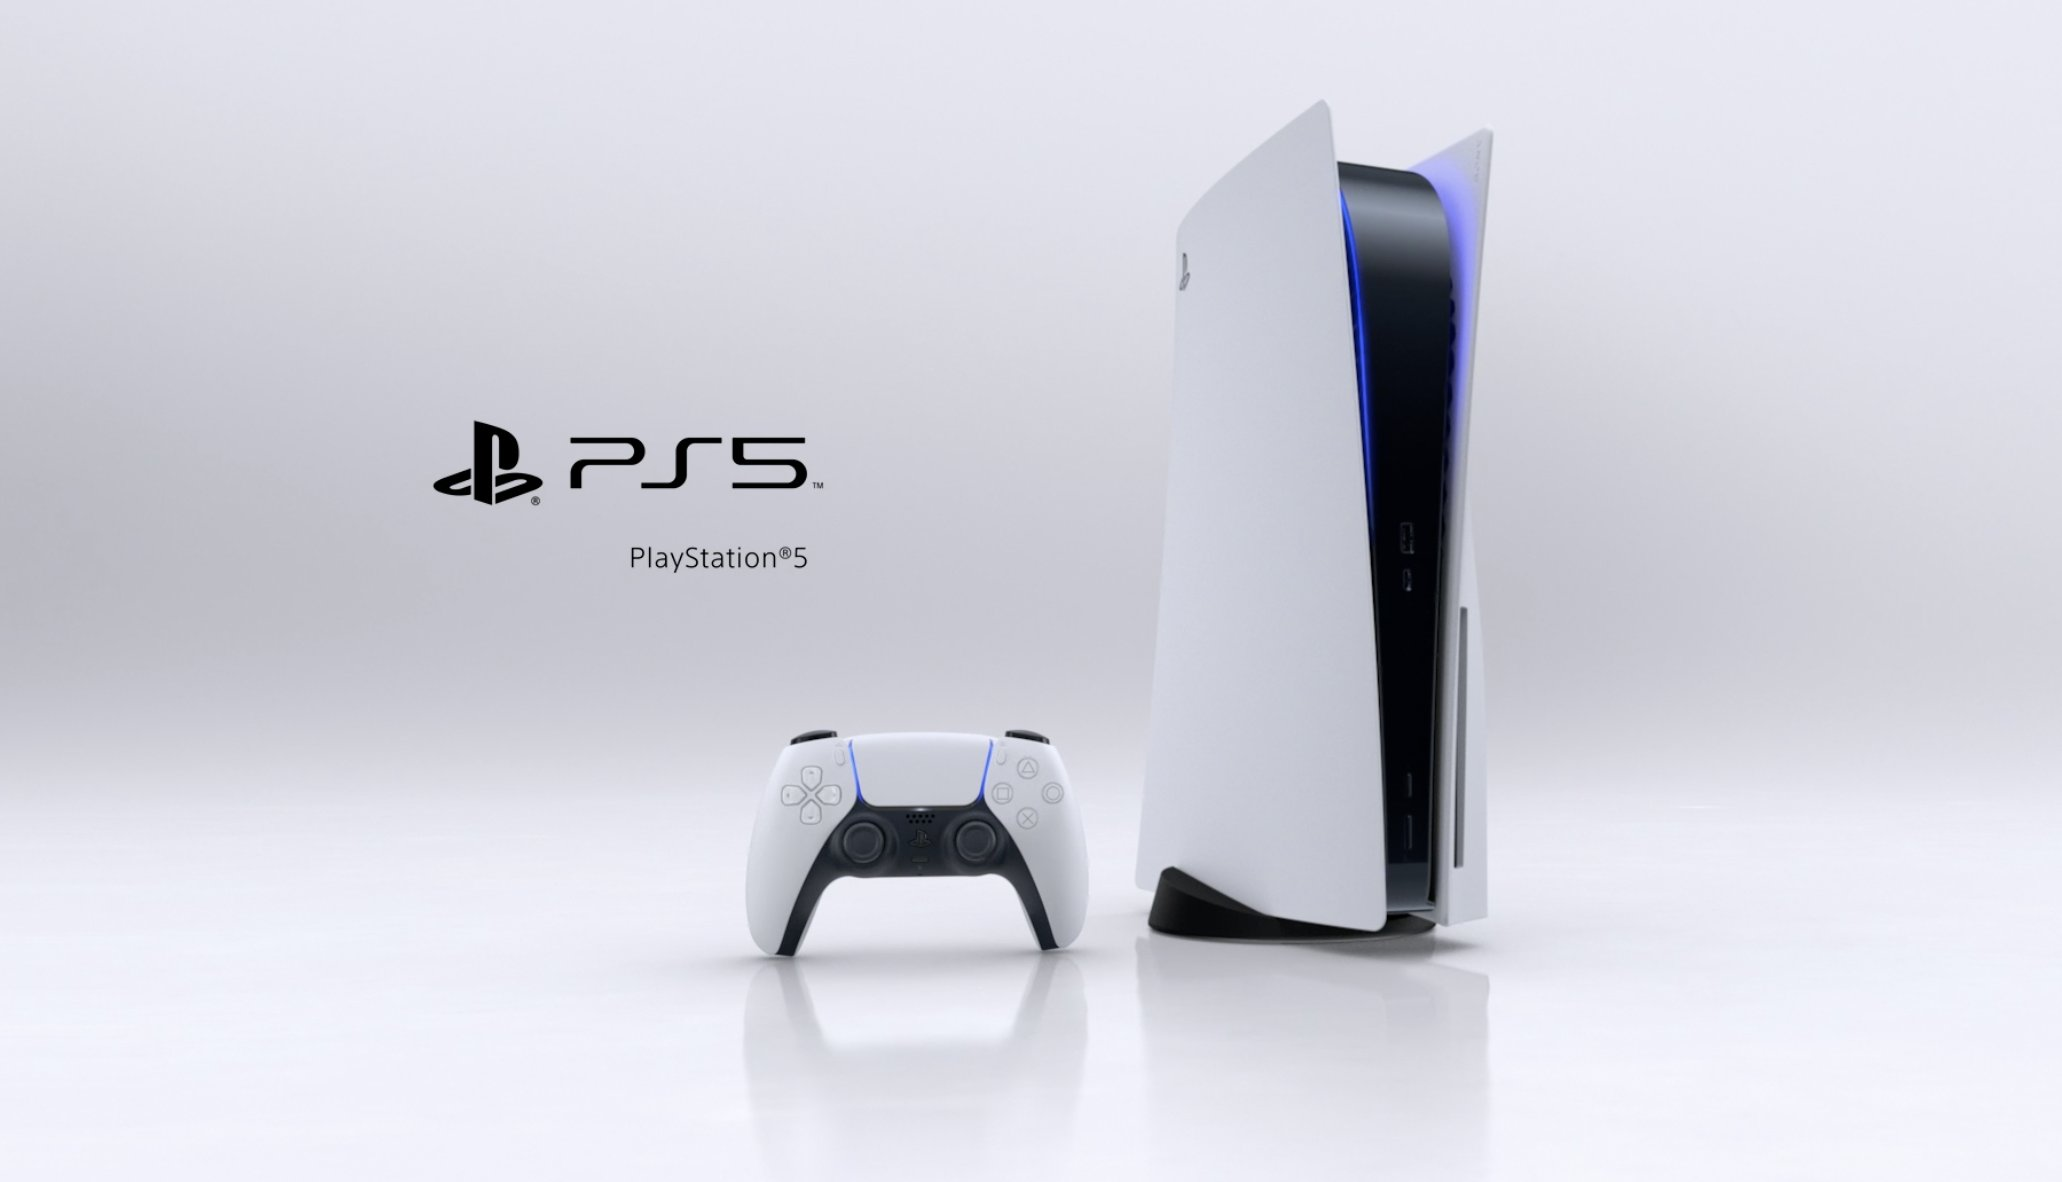 PlayStation 5 Wallpapers   Top PlayStation 5 Backgrounds 2062x1182